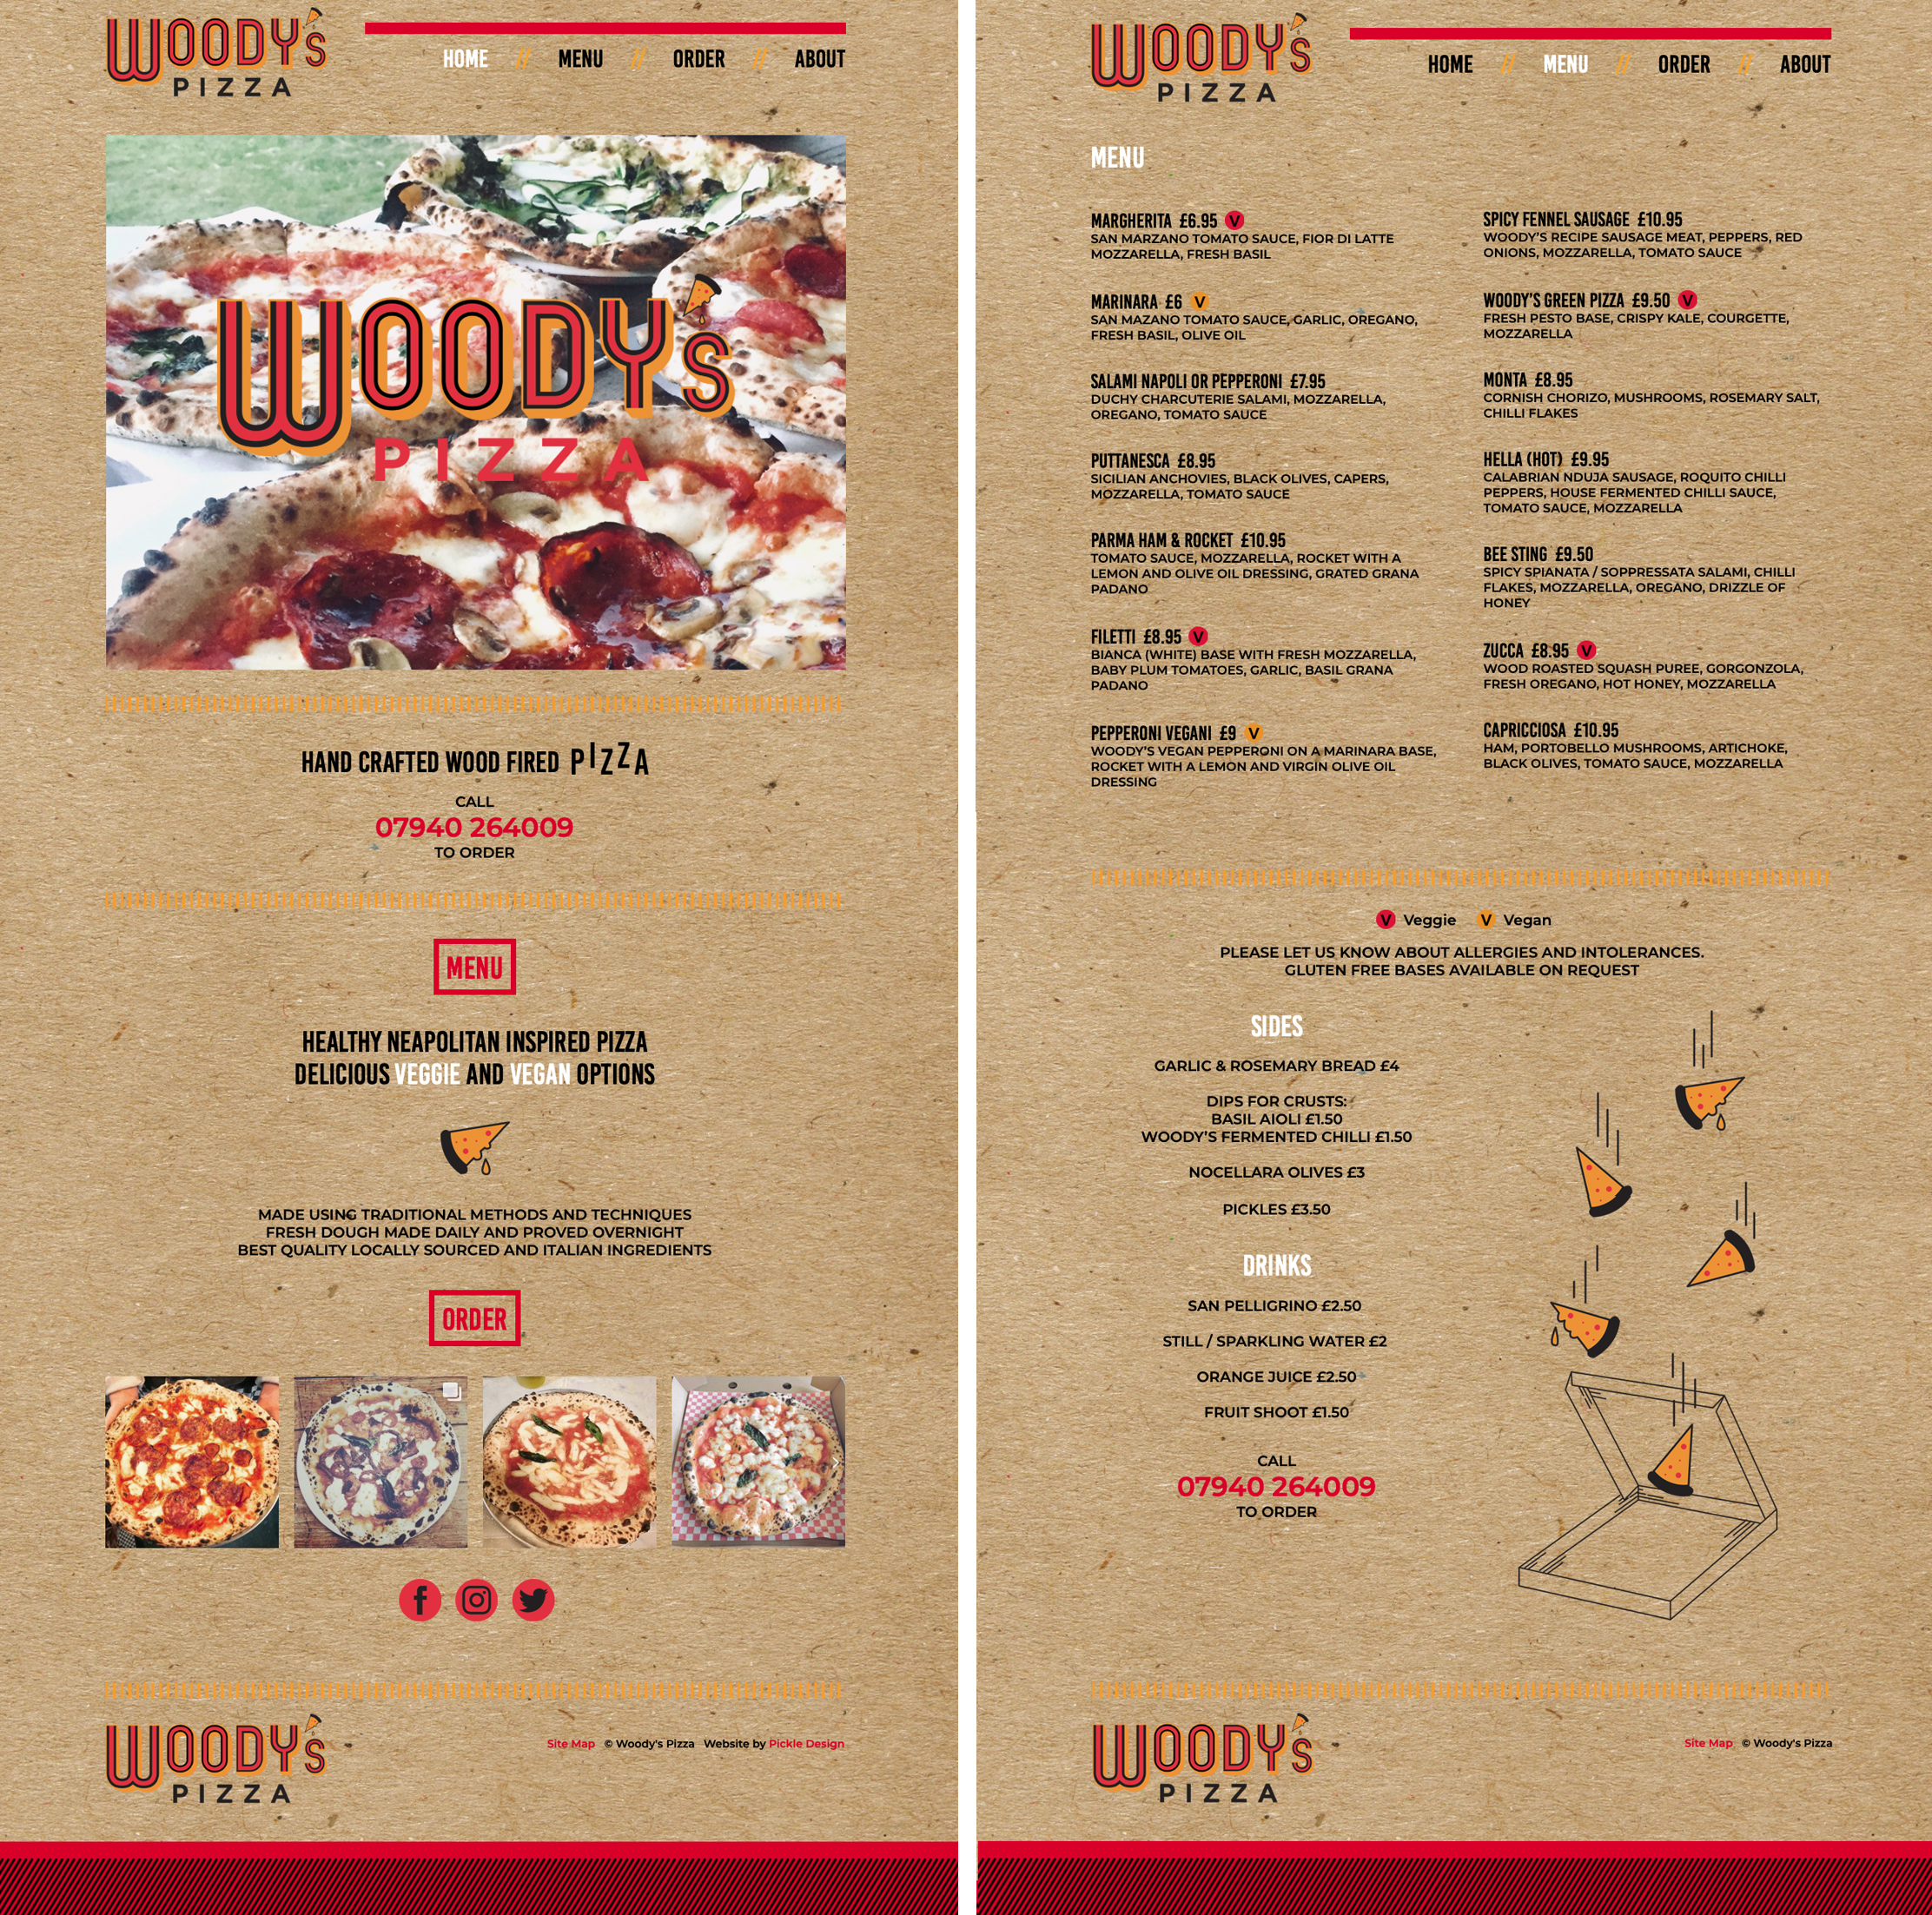 Home and menu page